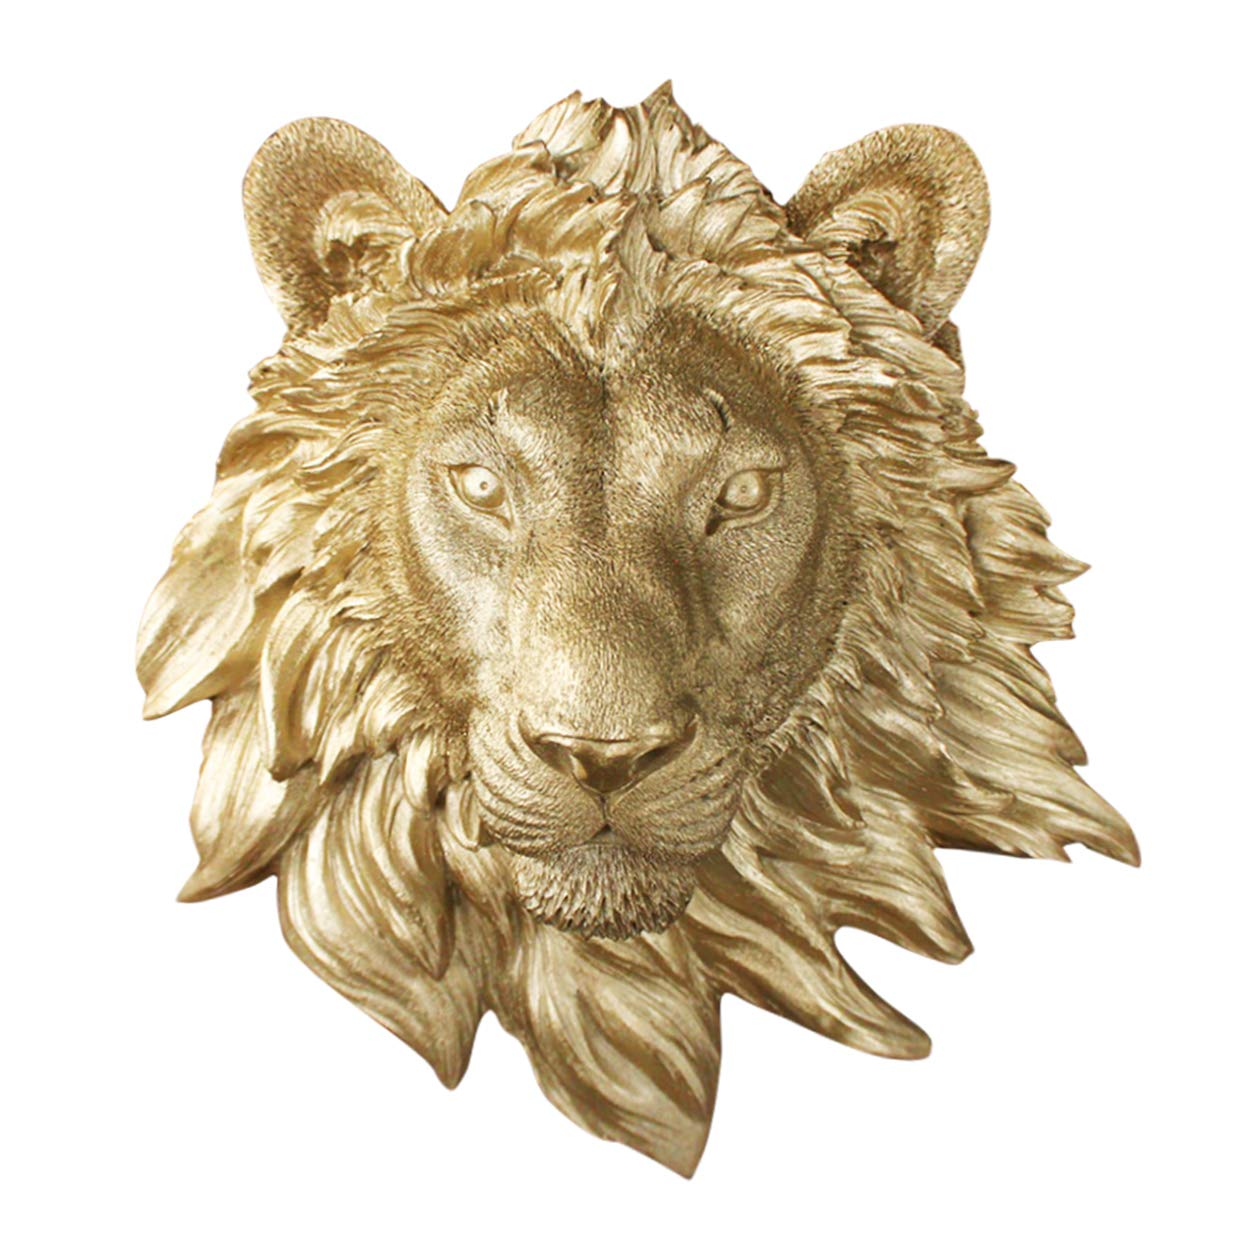 Wall Charmers Mini Faux Lion Head | The Saharan Room Decor Wall Art| Hand finished Home Decor, Farmhouse Decor, Bedroom Decor, Bathroom Decor, Office Decor Rustic Wall Decor Rustic Home Decor Accents